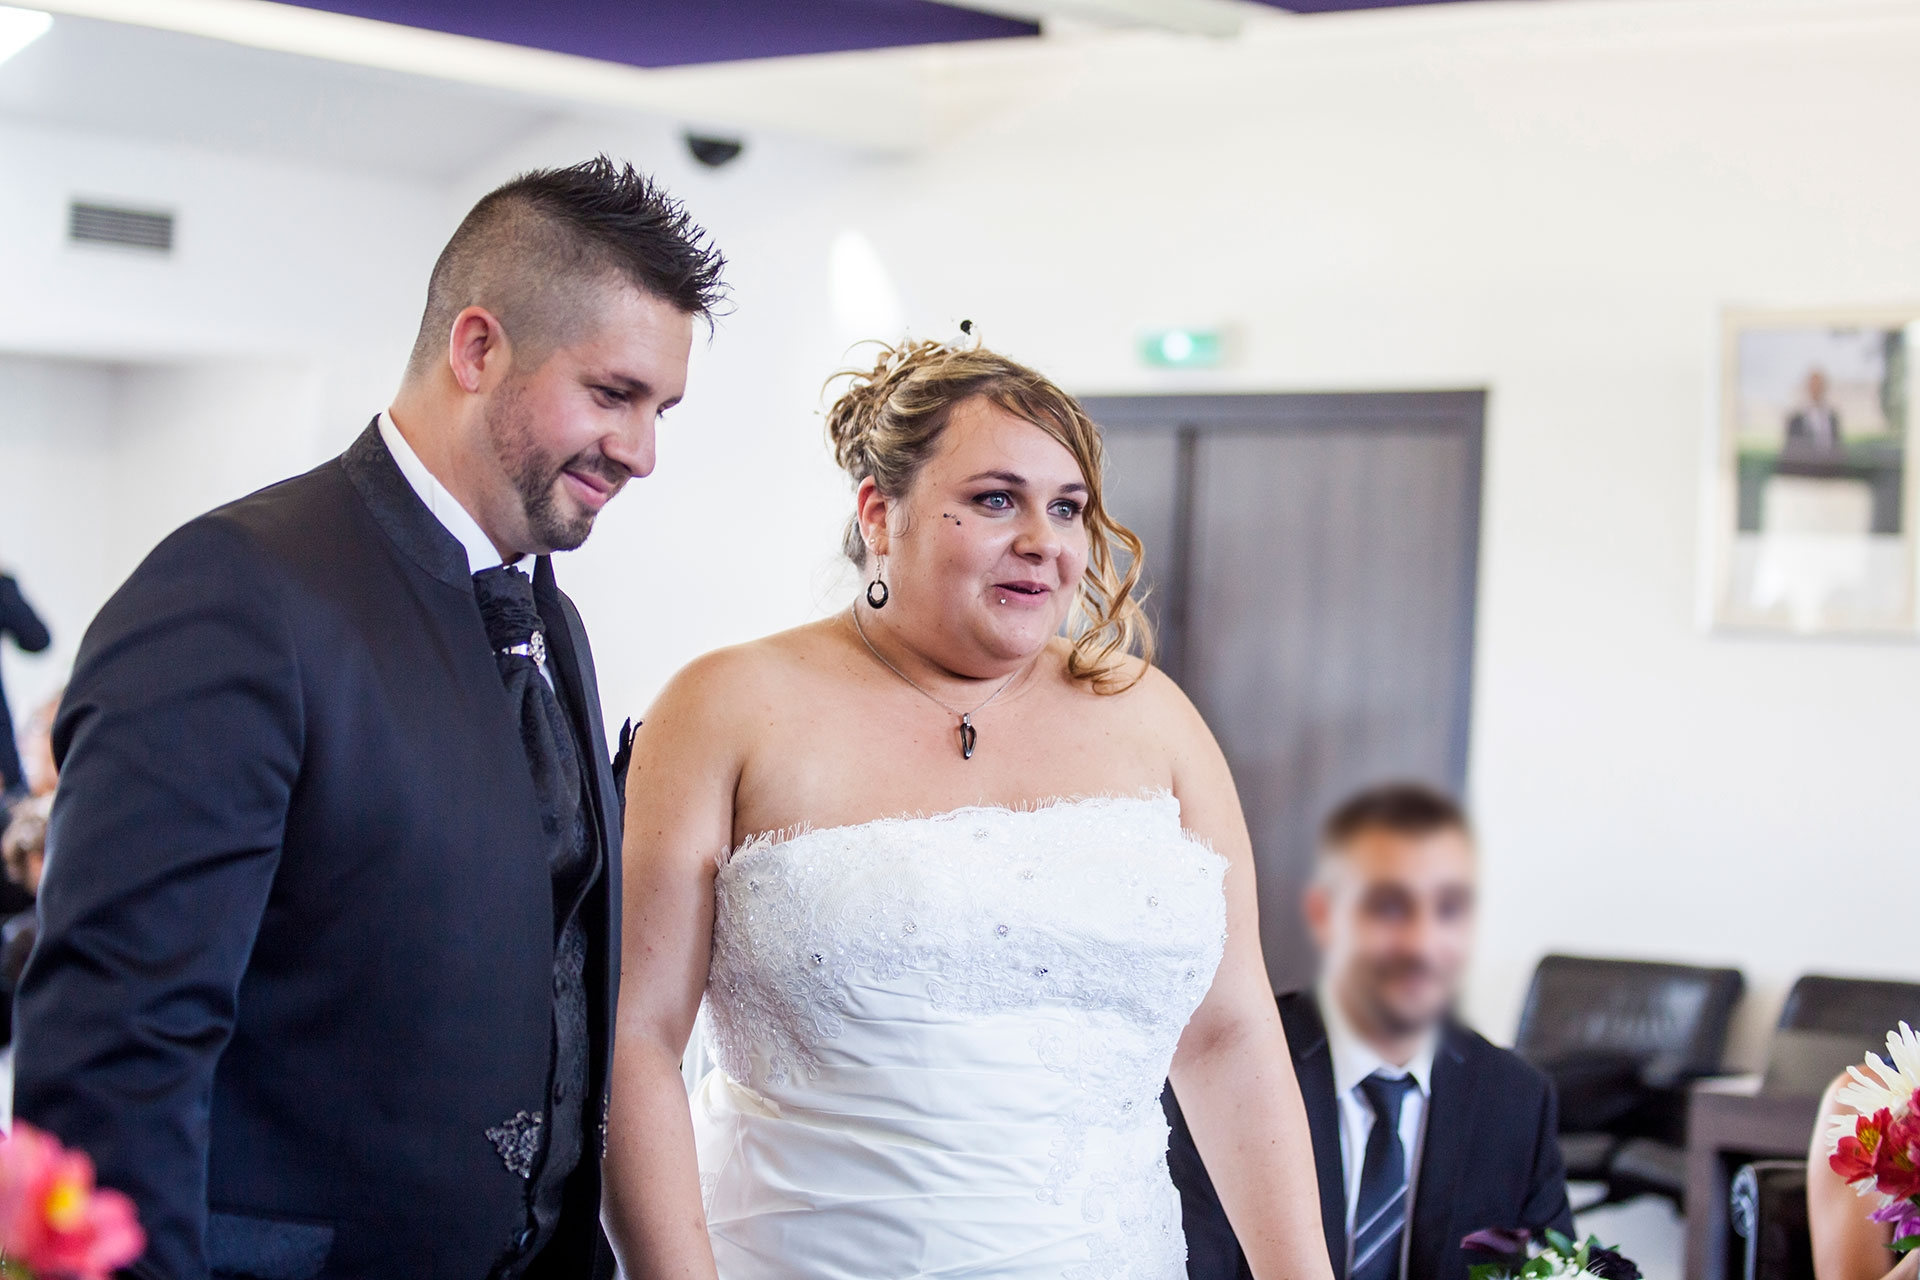 particuliers-evenements-mariages-oui-elodie&wilson-36